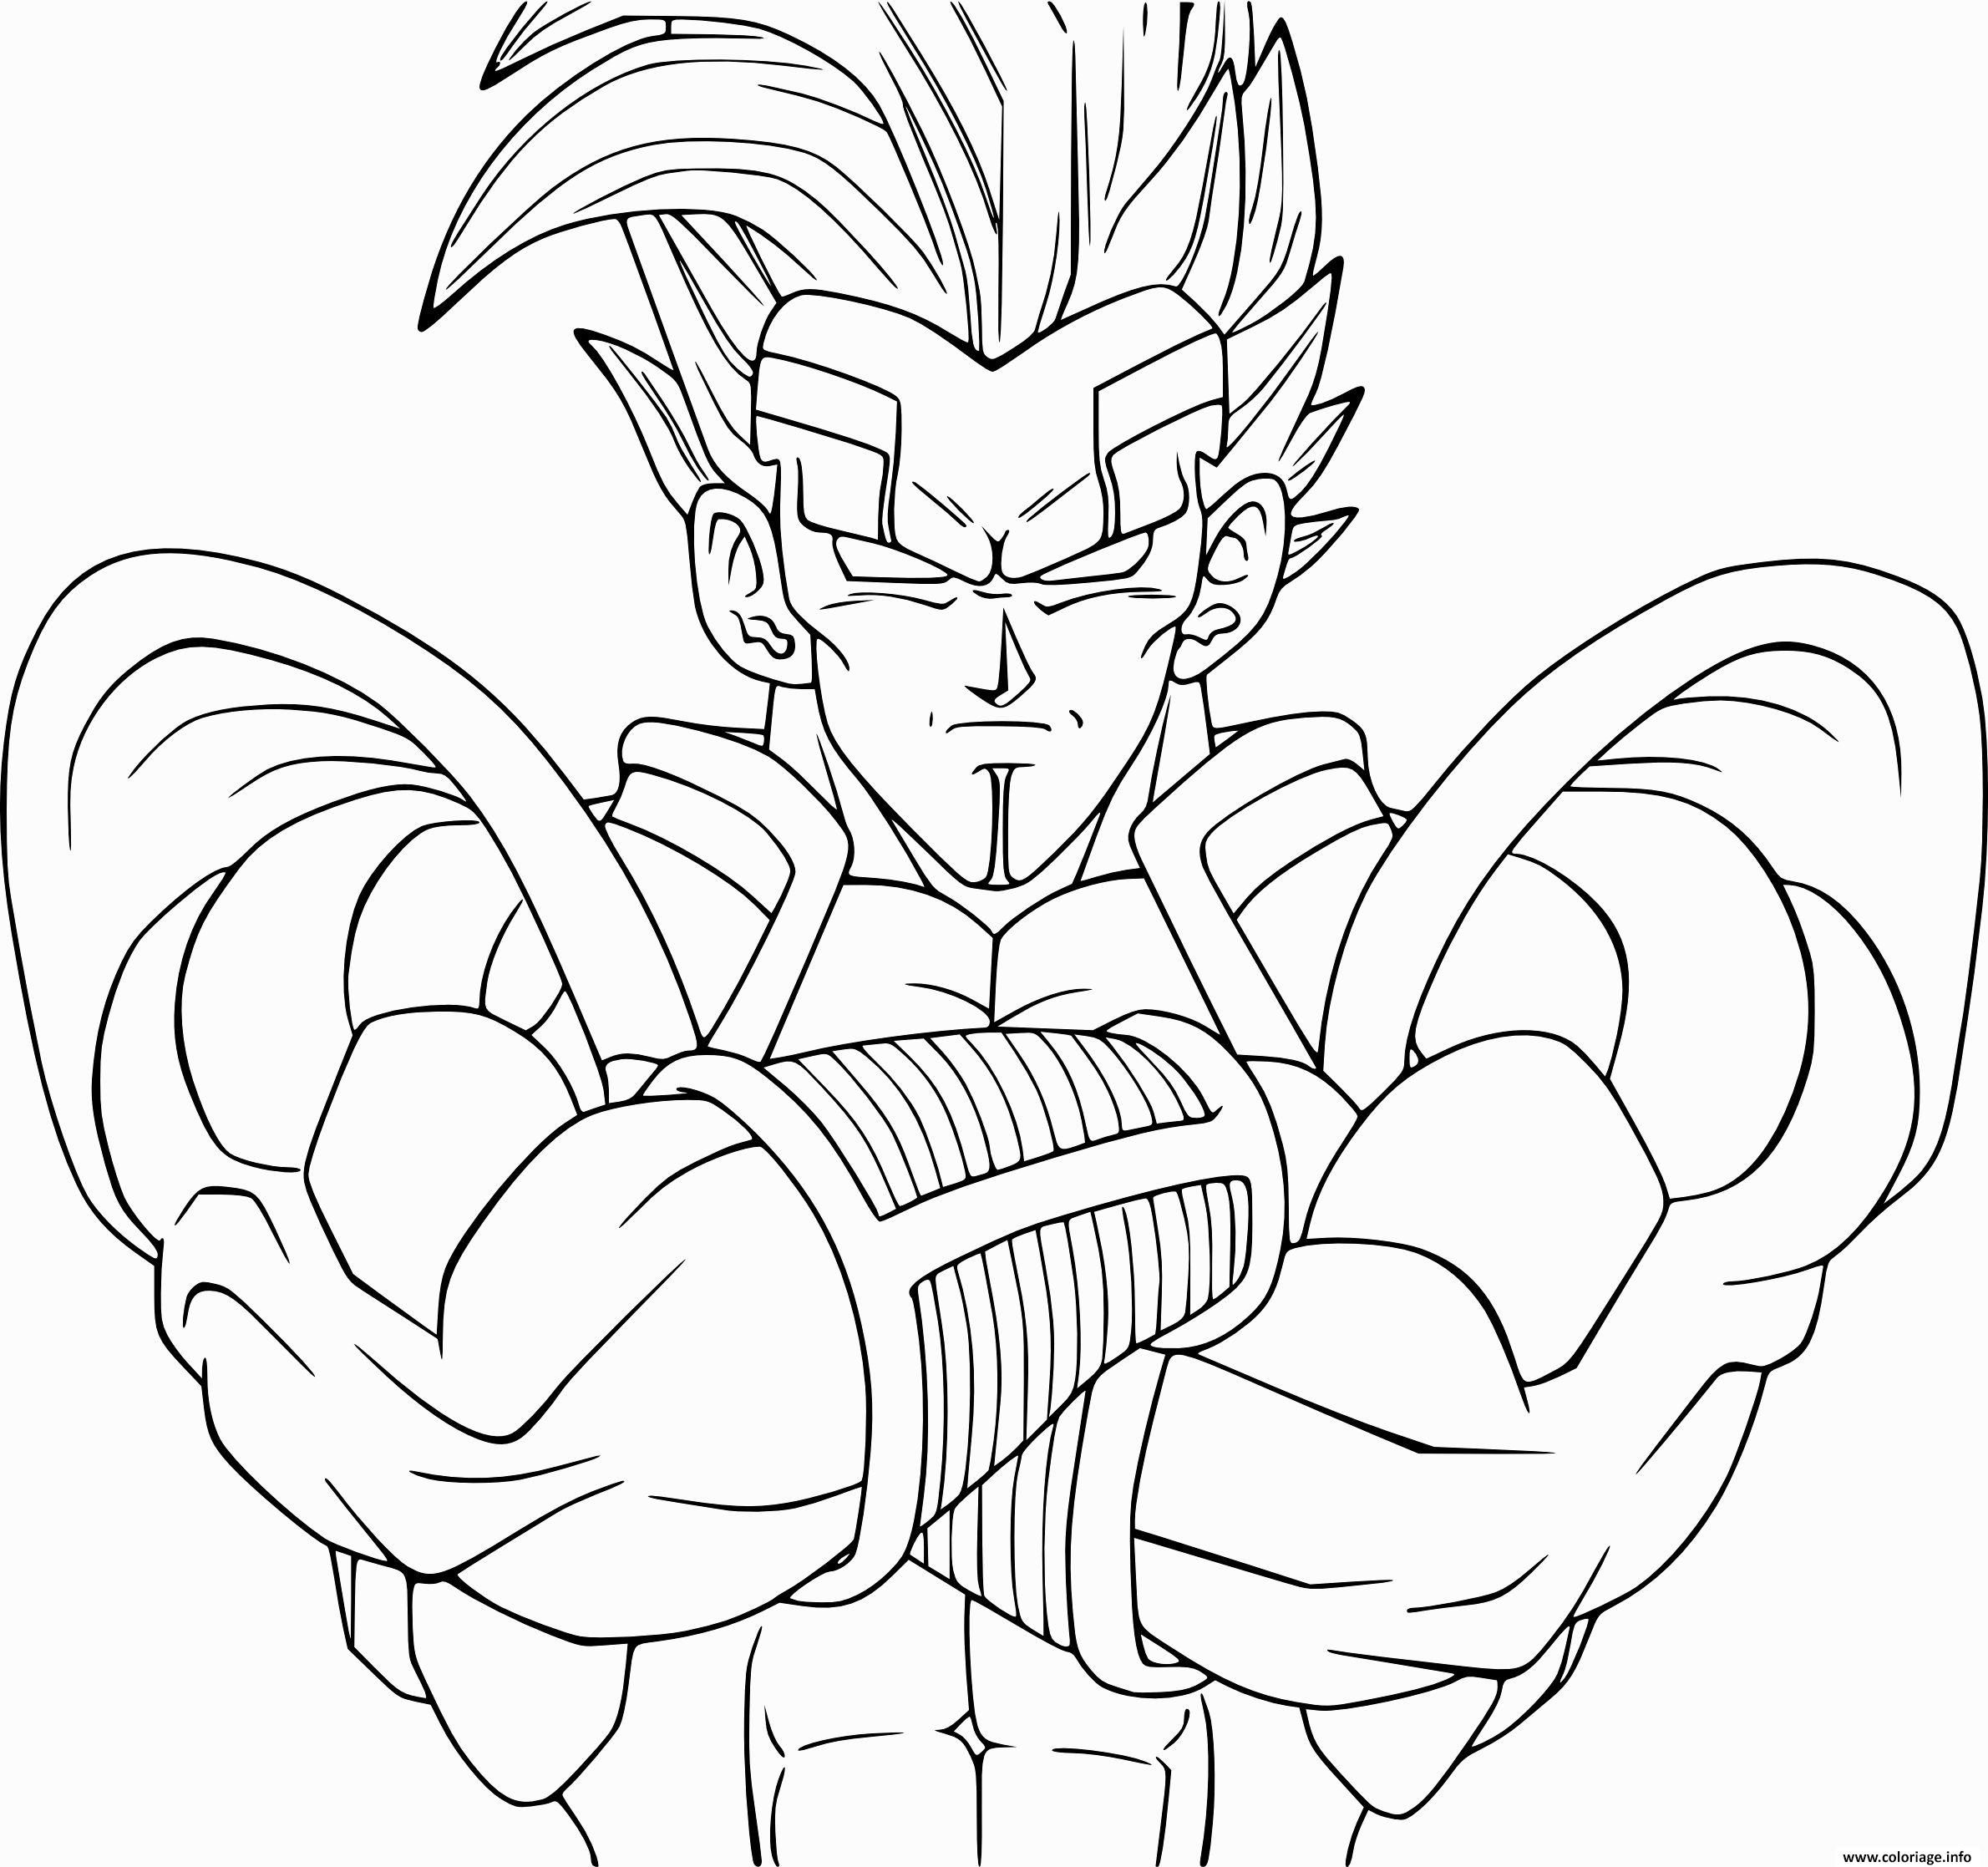 Coloriage unique dragon ball z vegeta dessin - Dessin de dragon ball super ...